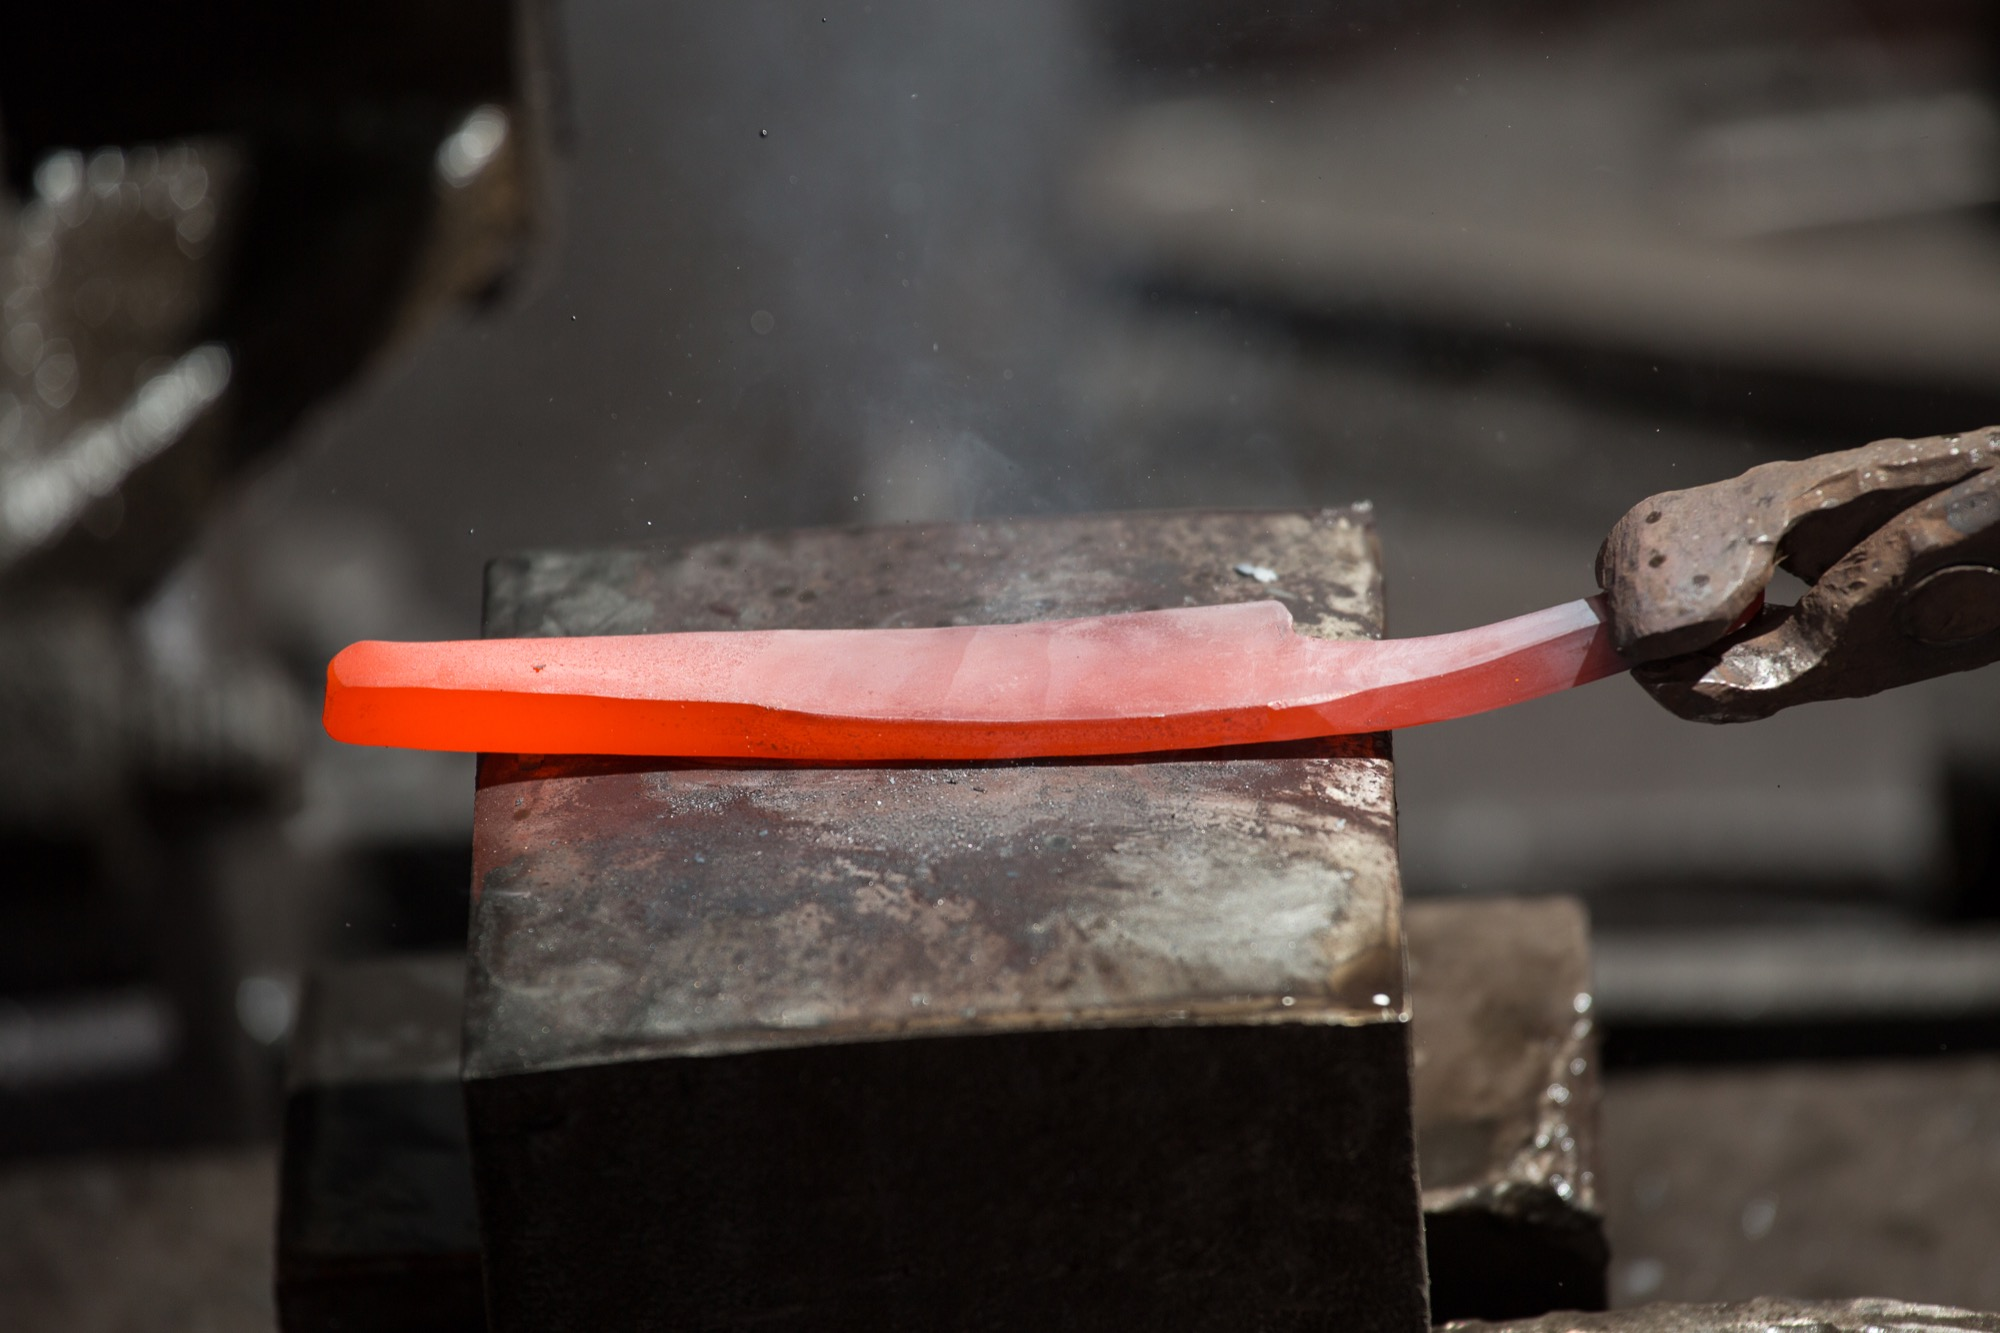 Takeda forges his blades from Aogami Super steel / Photo by Max Hodges